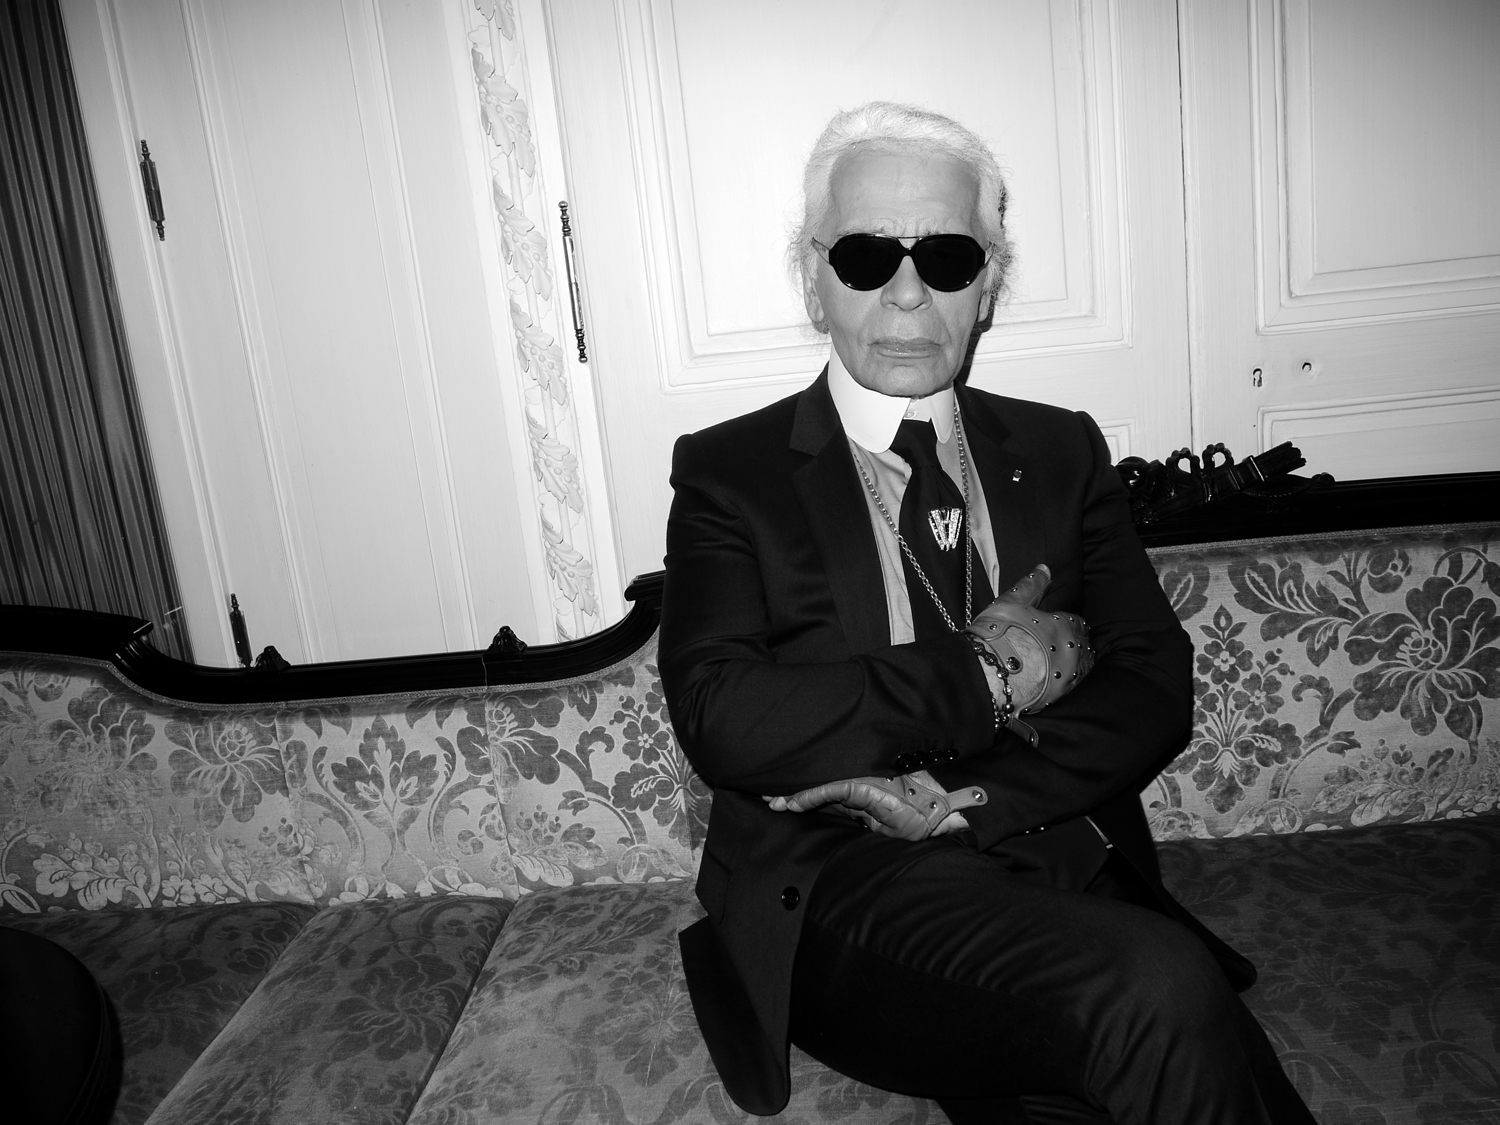 https://www.thealleah.com/wp-content/uploads/2019/02/Karl-Lagerfeld-To-Host-Chanel-Show-In-Dallas.jpg